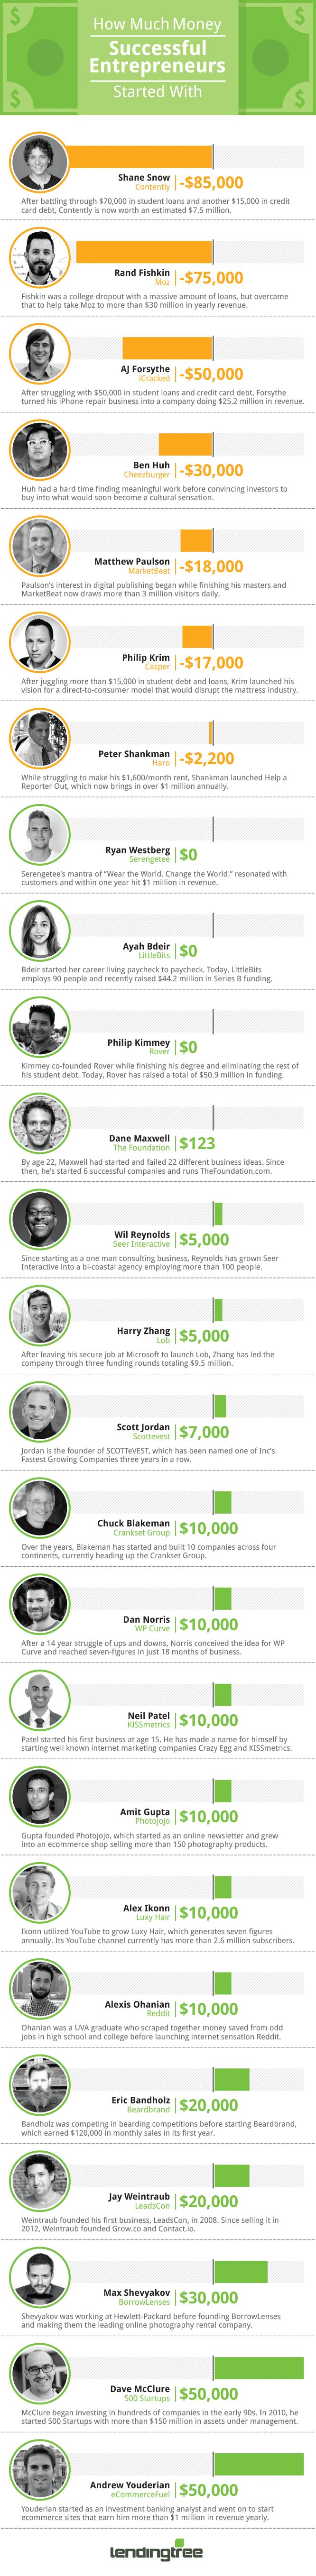 How Much Money Successful Entrepreneurs Started With #Infographic #SuccessStories #Entrepreneur